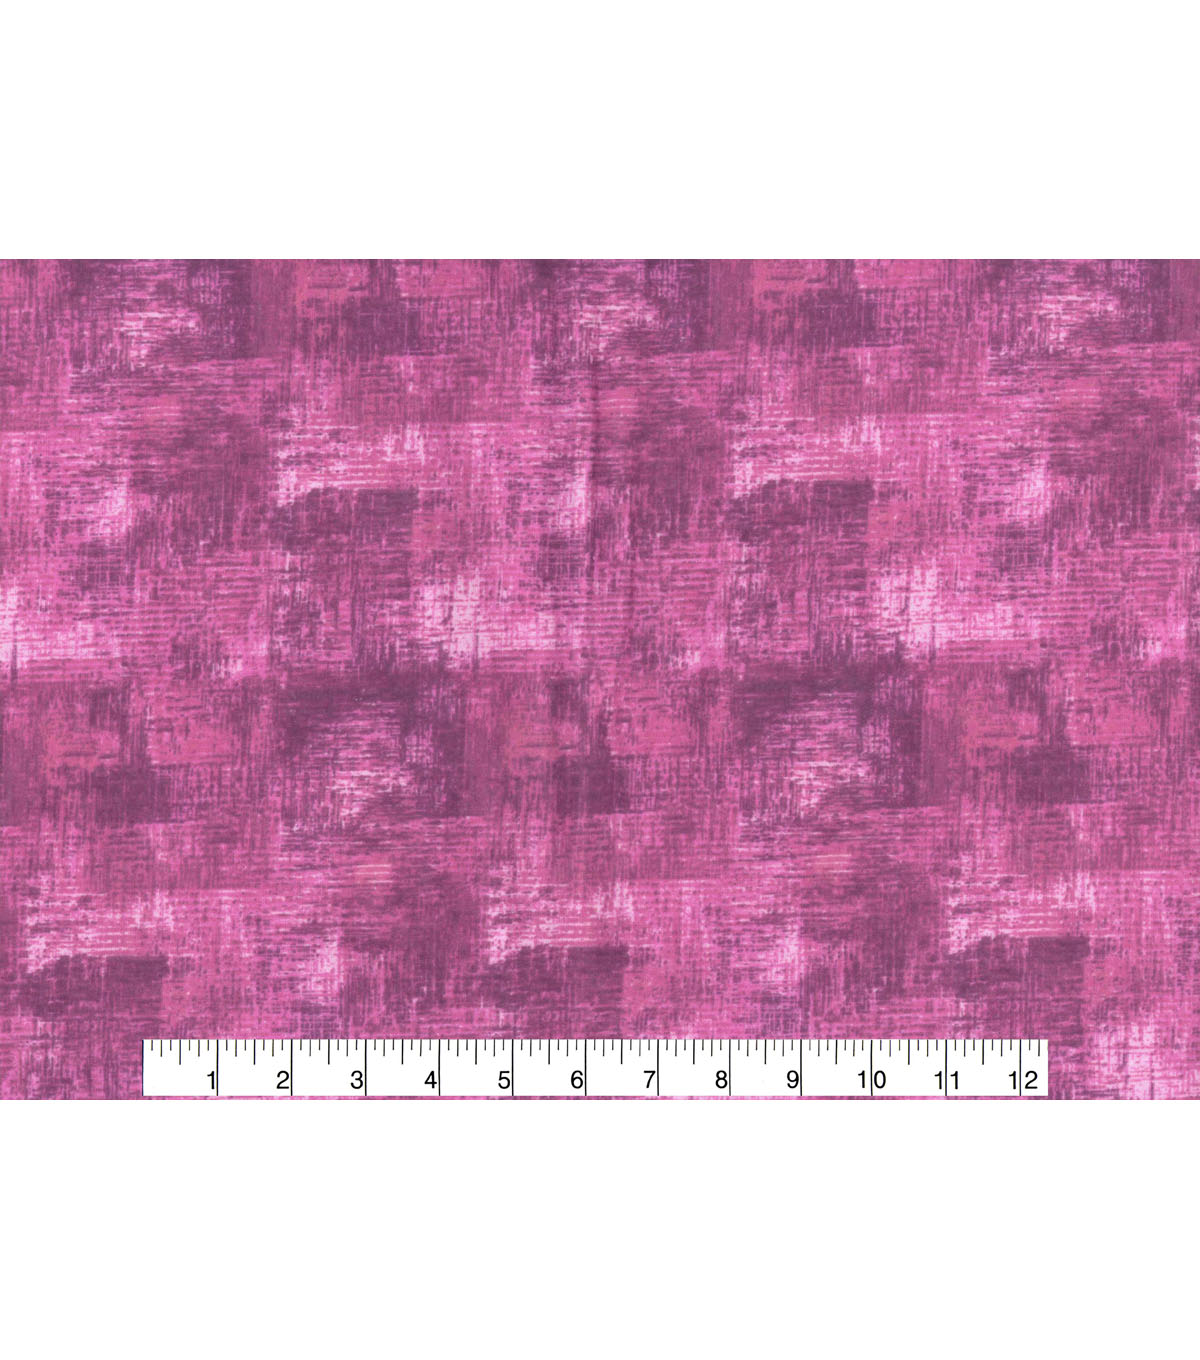 Wide Flannel Fabric -Pink Blender